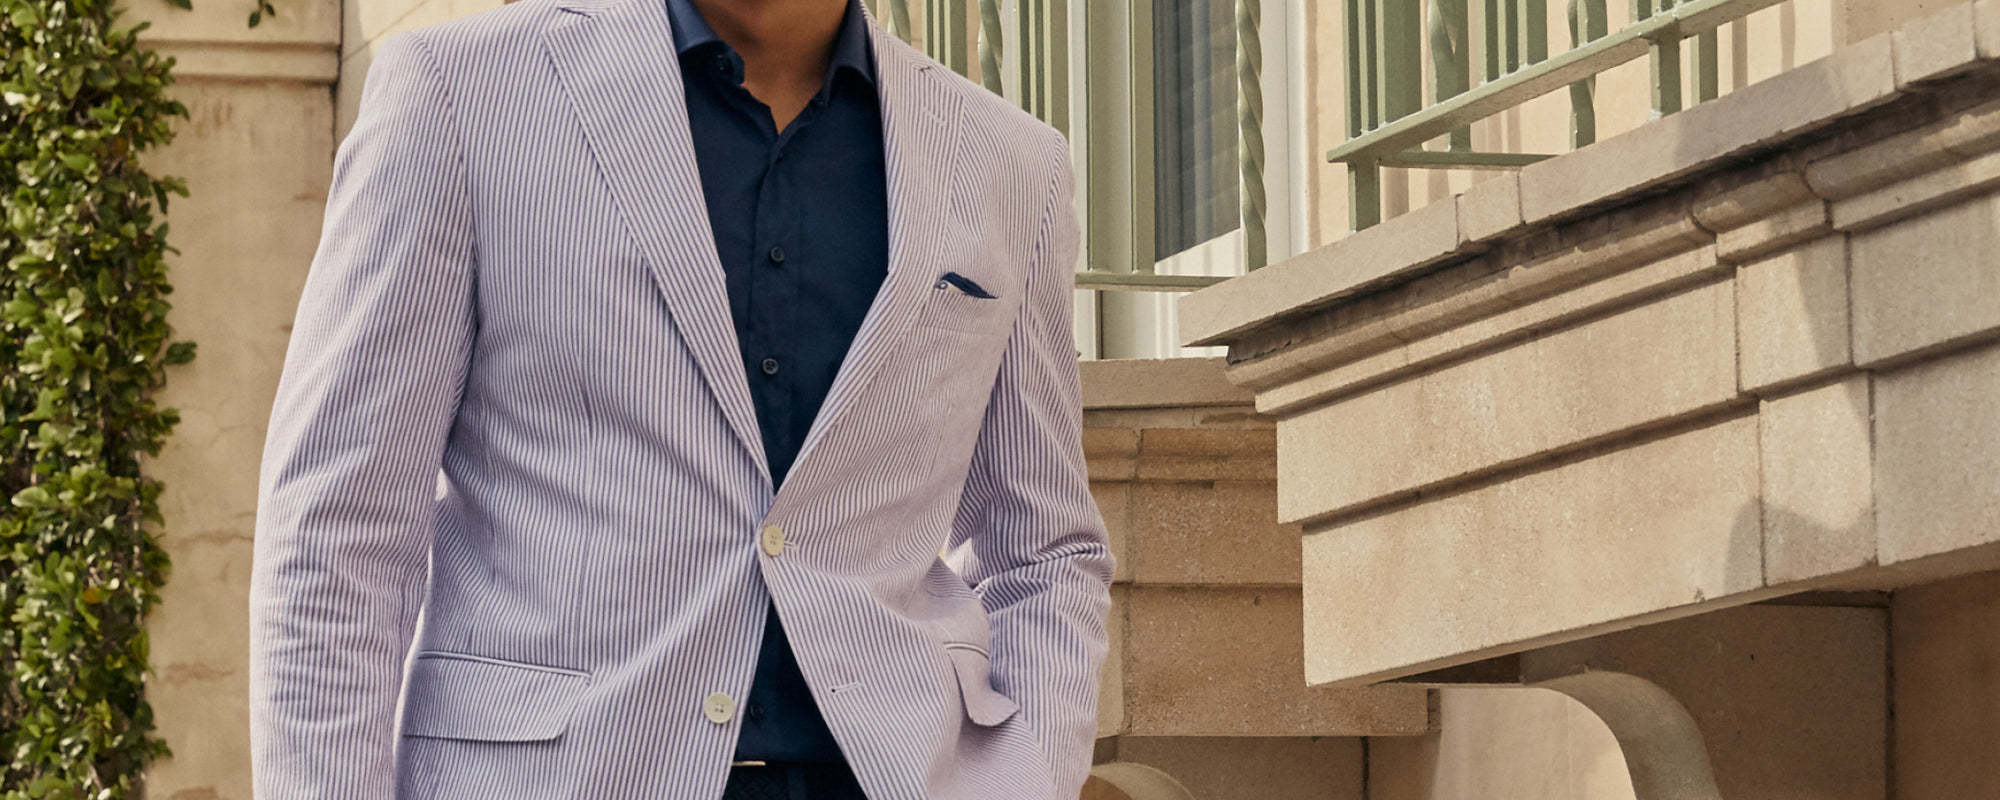 Seersucker sport coats, blazers and jackets. By Haspel, the original seersucker suit. Made in America with top quality Italian seersucker material.